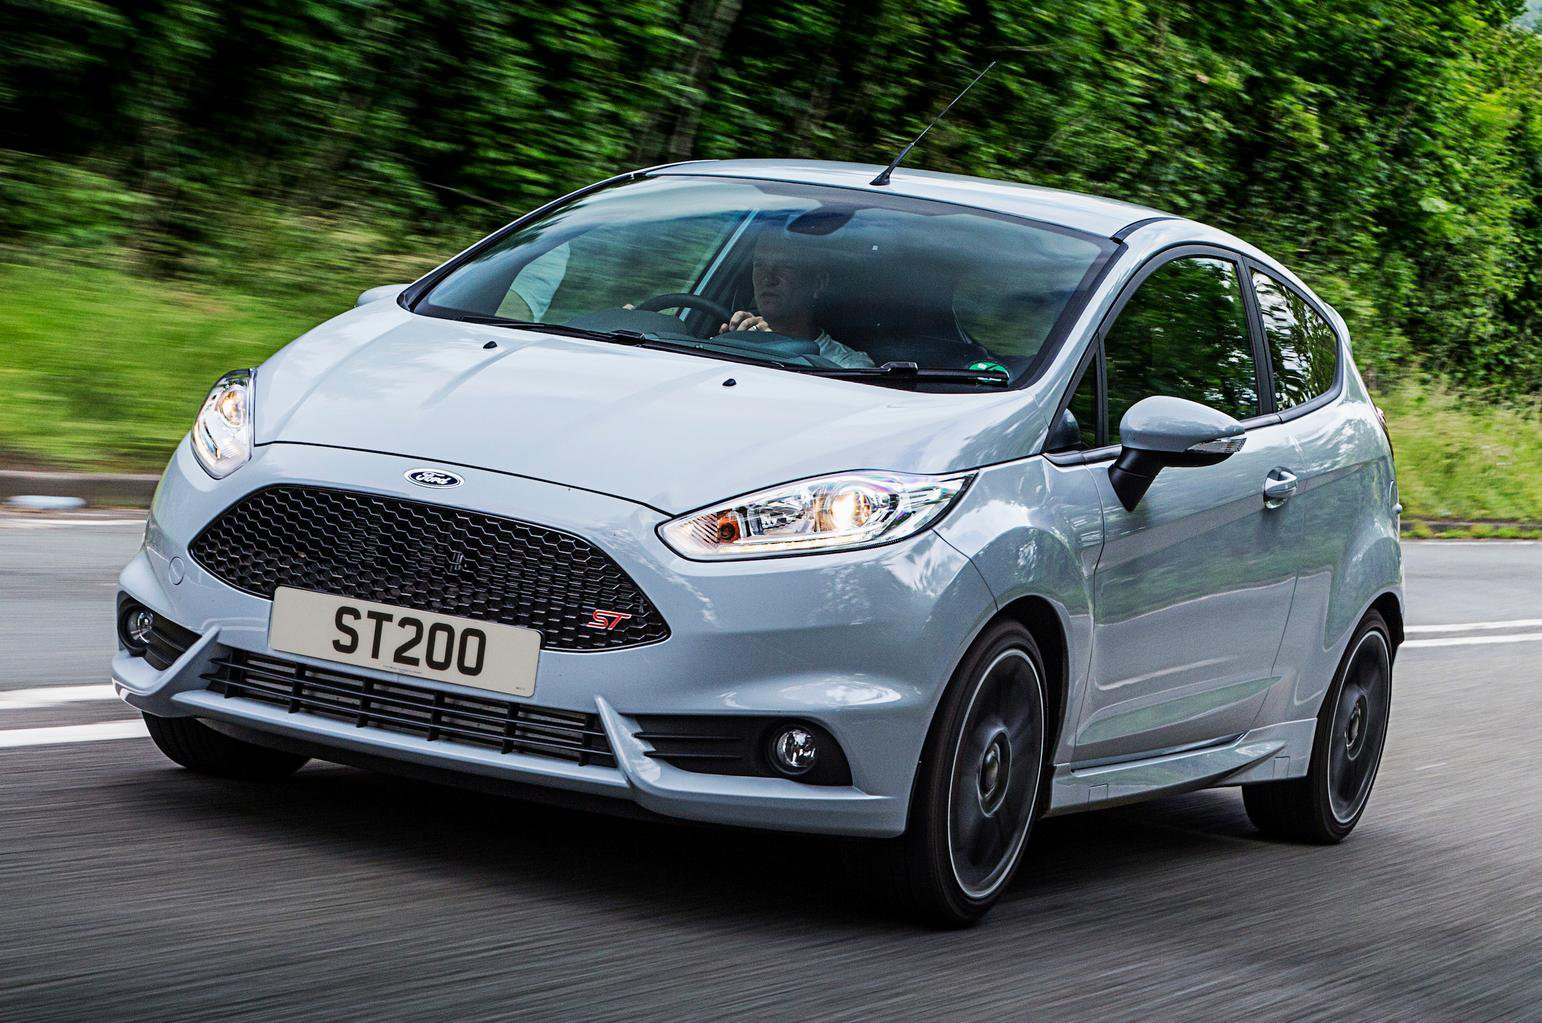 2016 ford fiesta st200 review what car. Black Bedroom Furniture Sets. Home Design Ideas